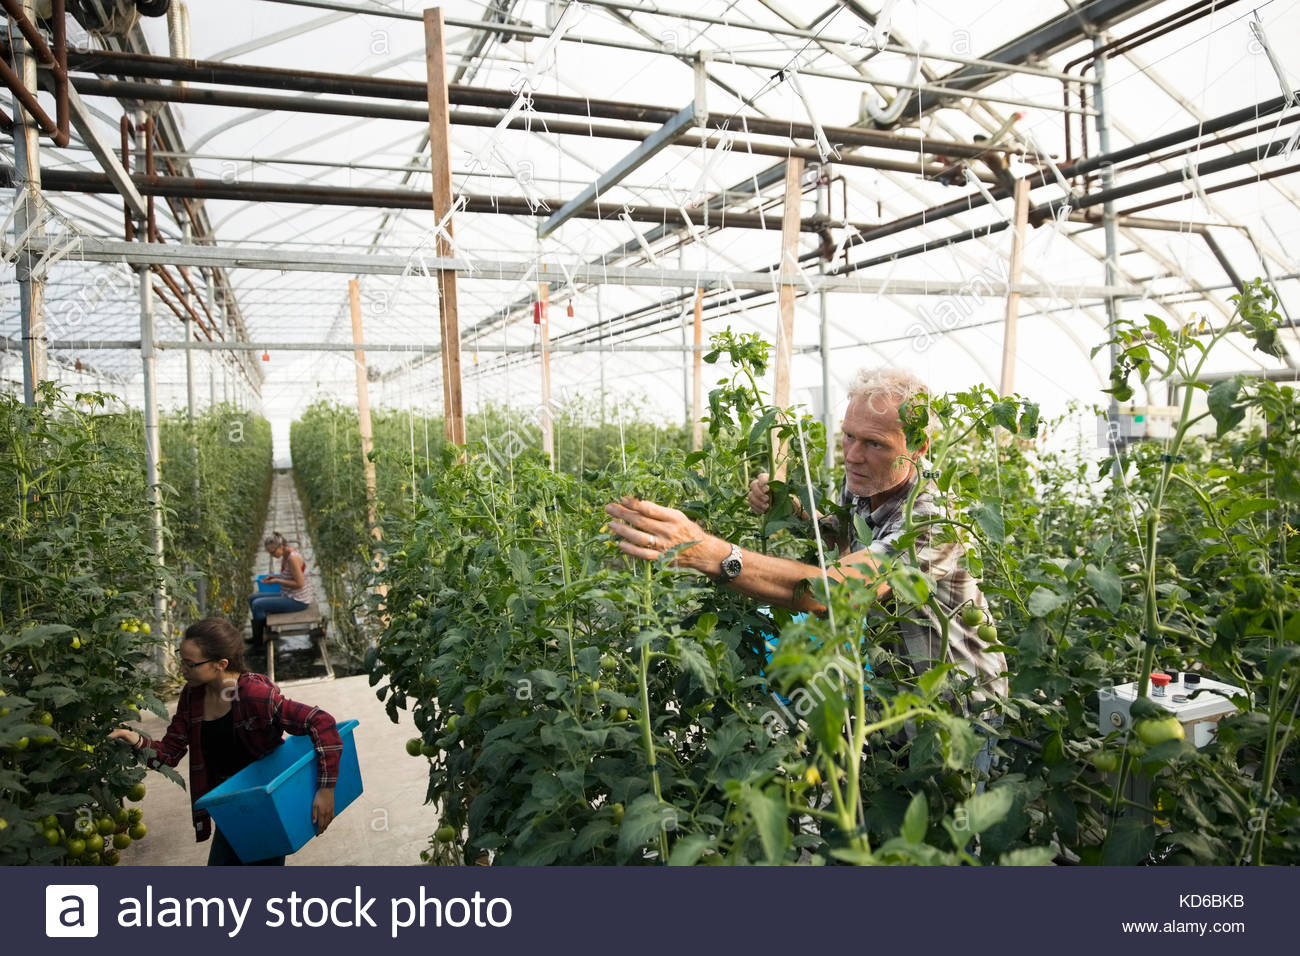 Farmers harvesting tomatoes in greenhouse - Stock Image